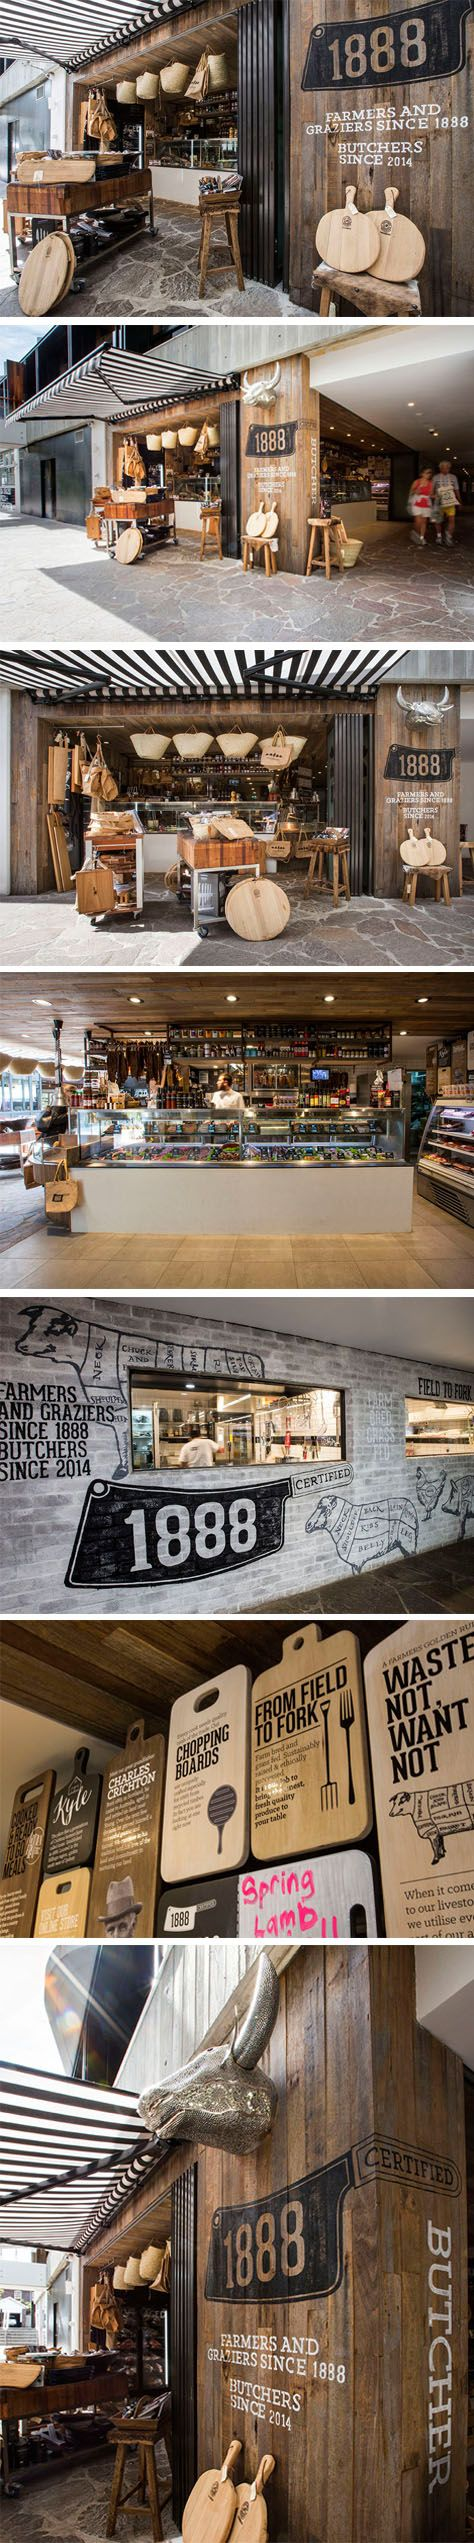 1888 Certified butcher by Morris Selvatico, Sydney – Australia.